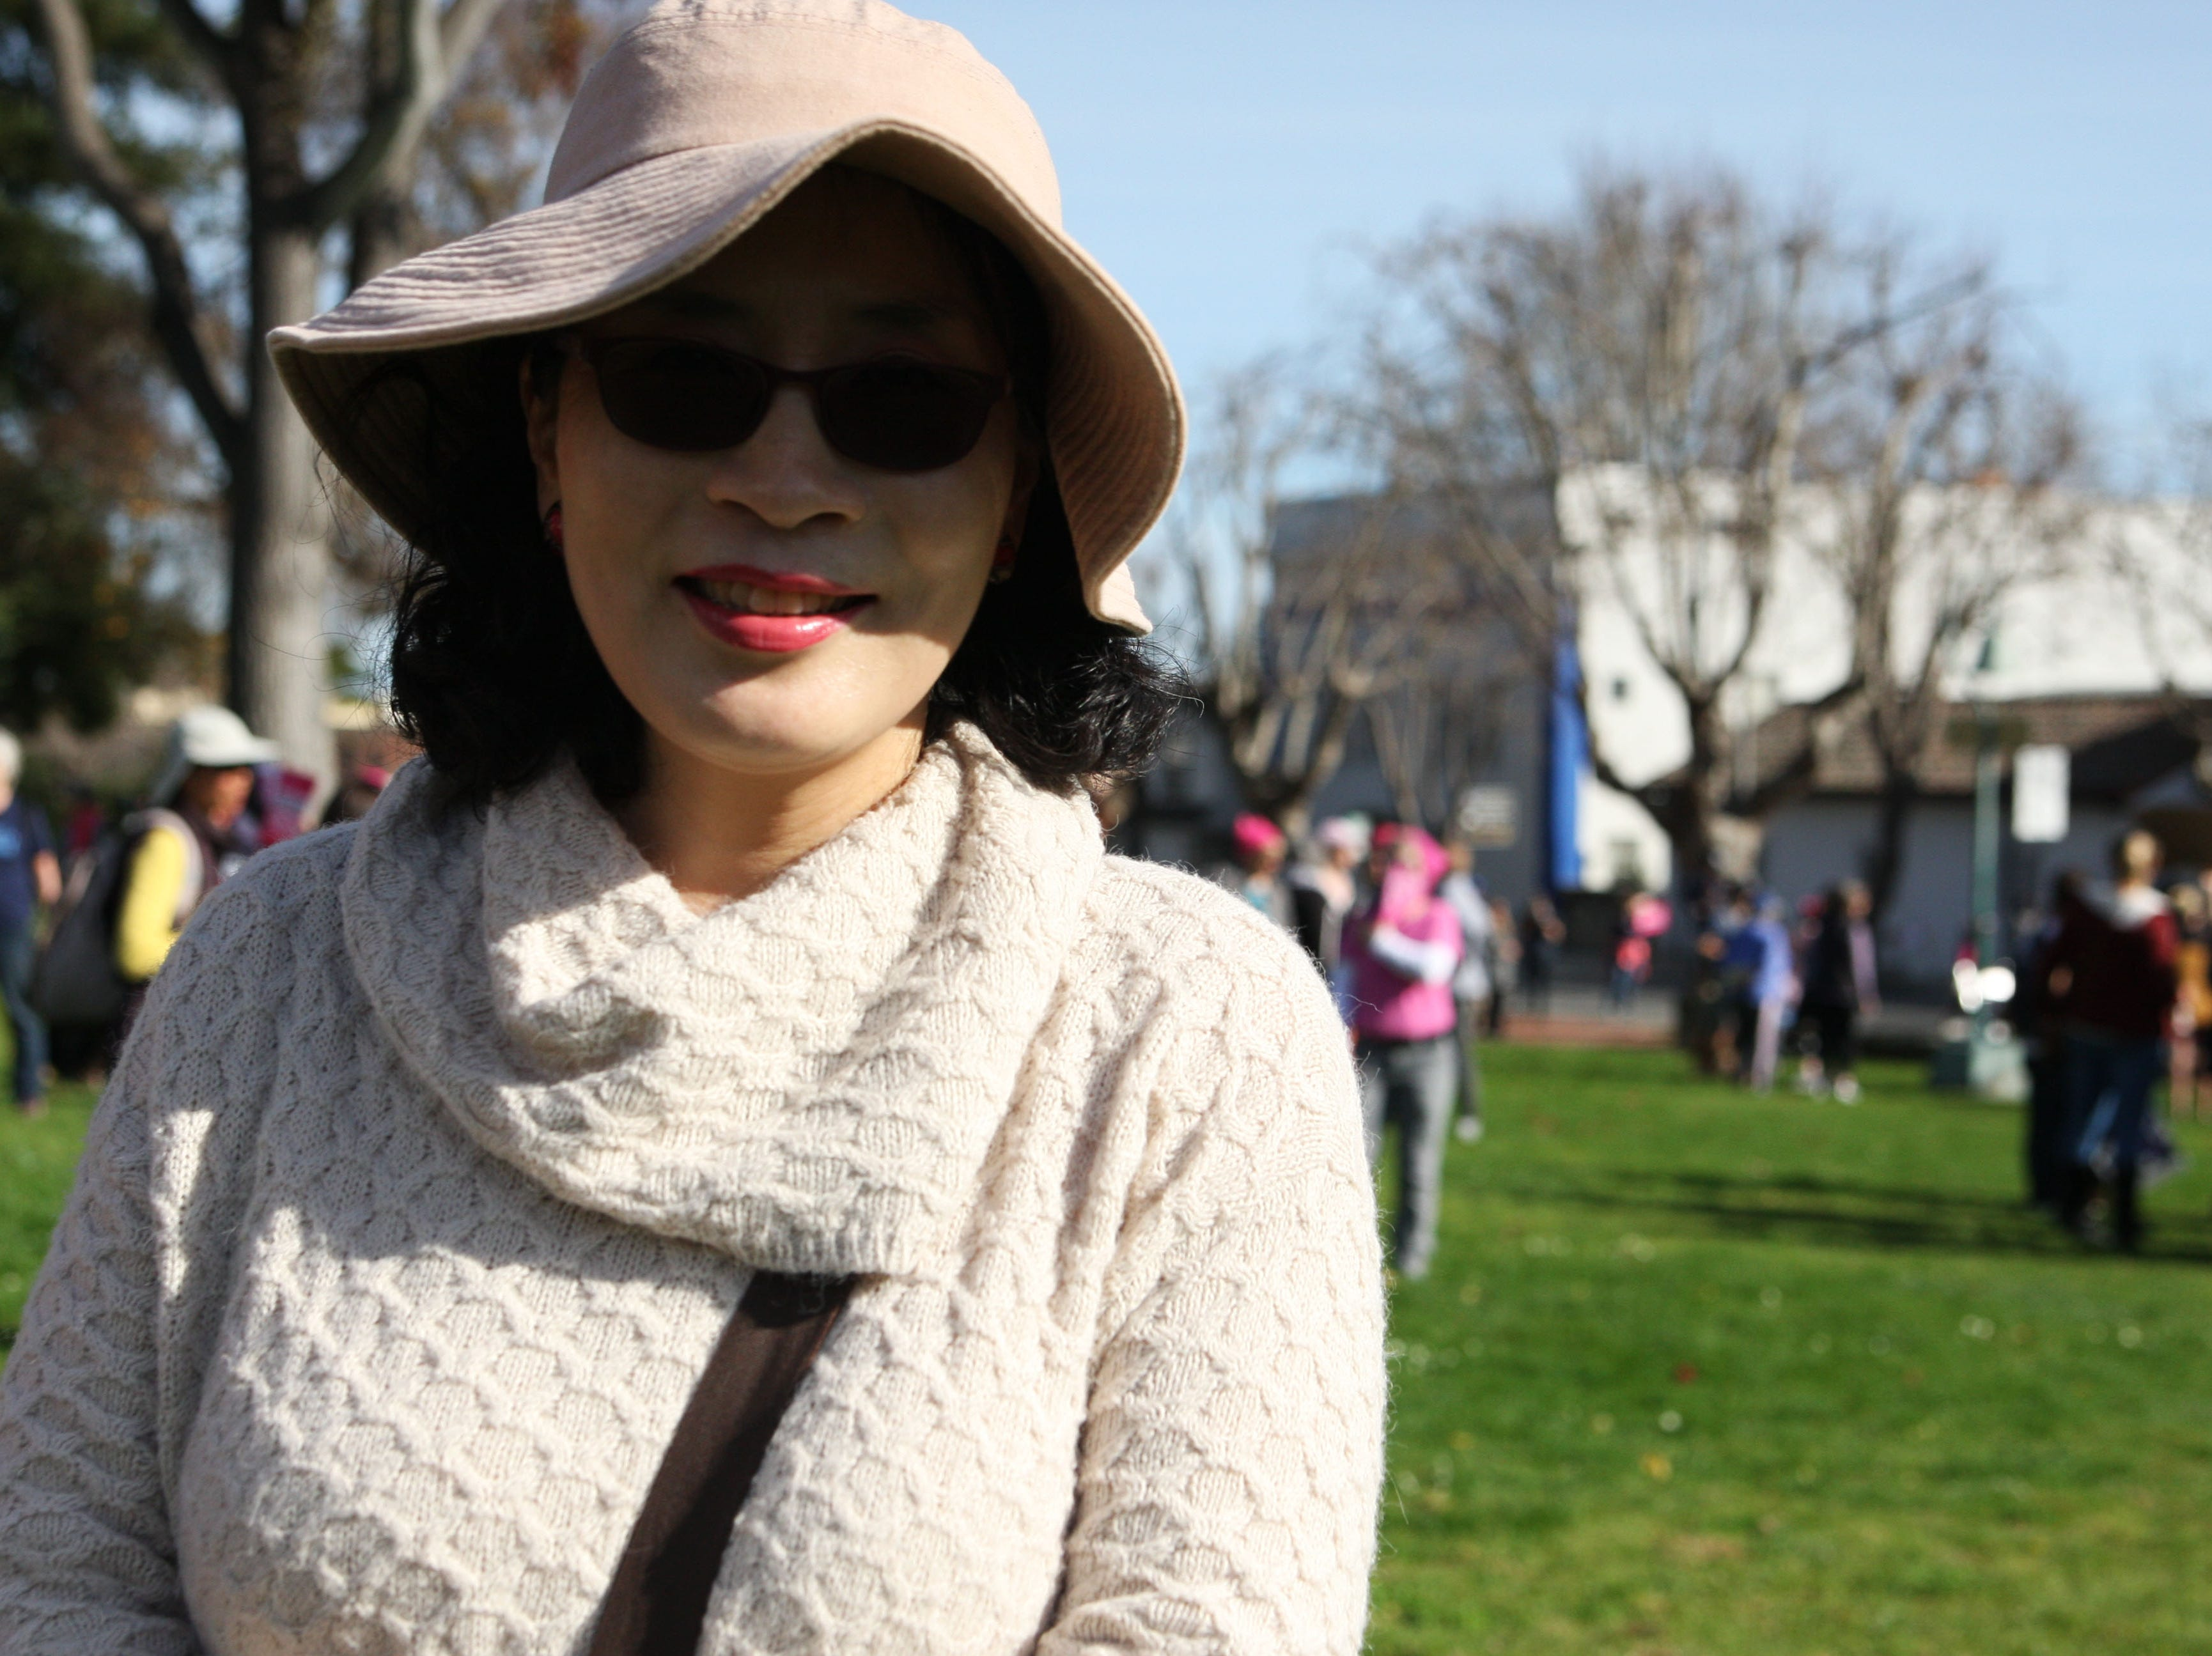 Masako Toki turned out to march Saturday because she believes in America as the best country in the world, she said, but she believes it has gone astray.